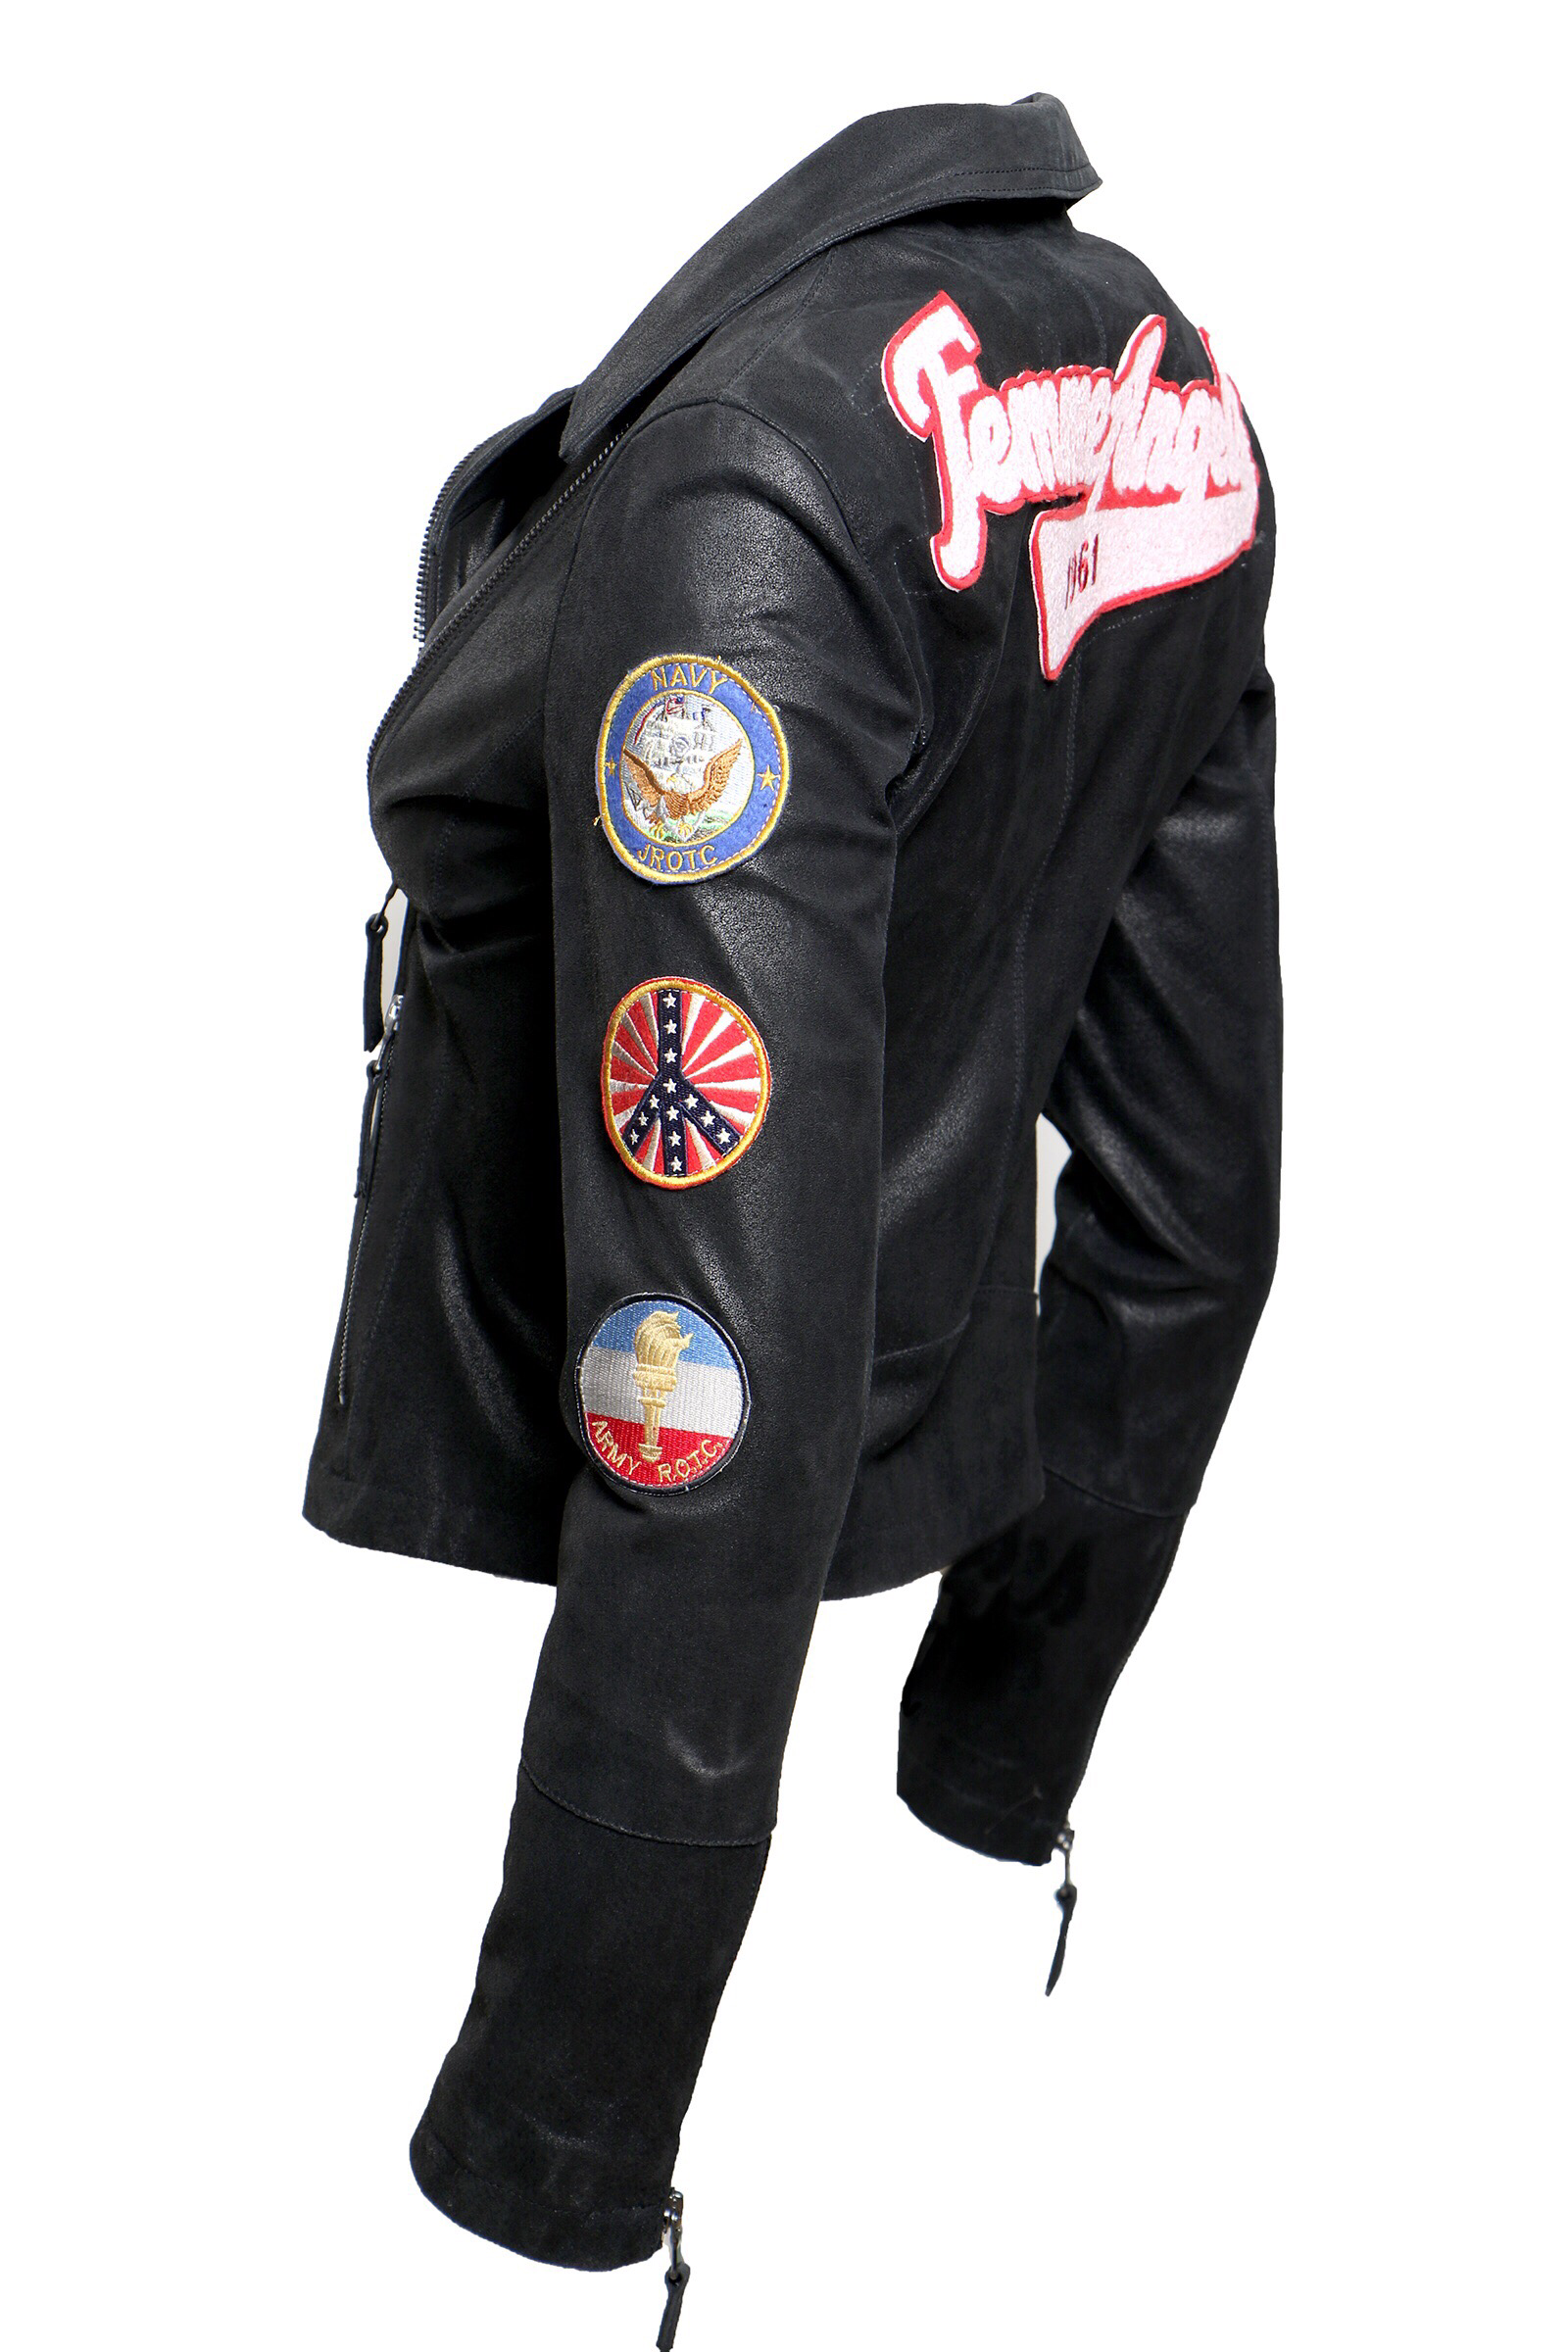 Patch Biker Jacket - The Bobby Boga